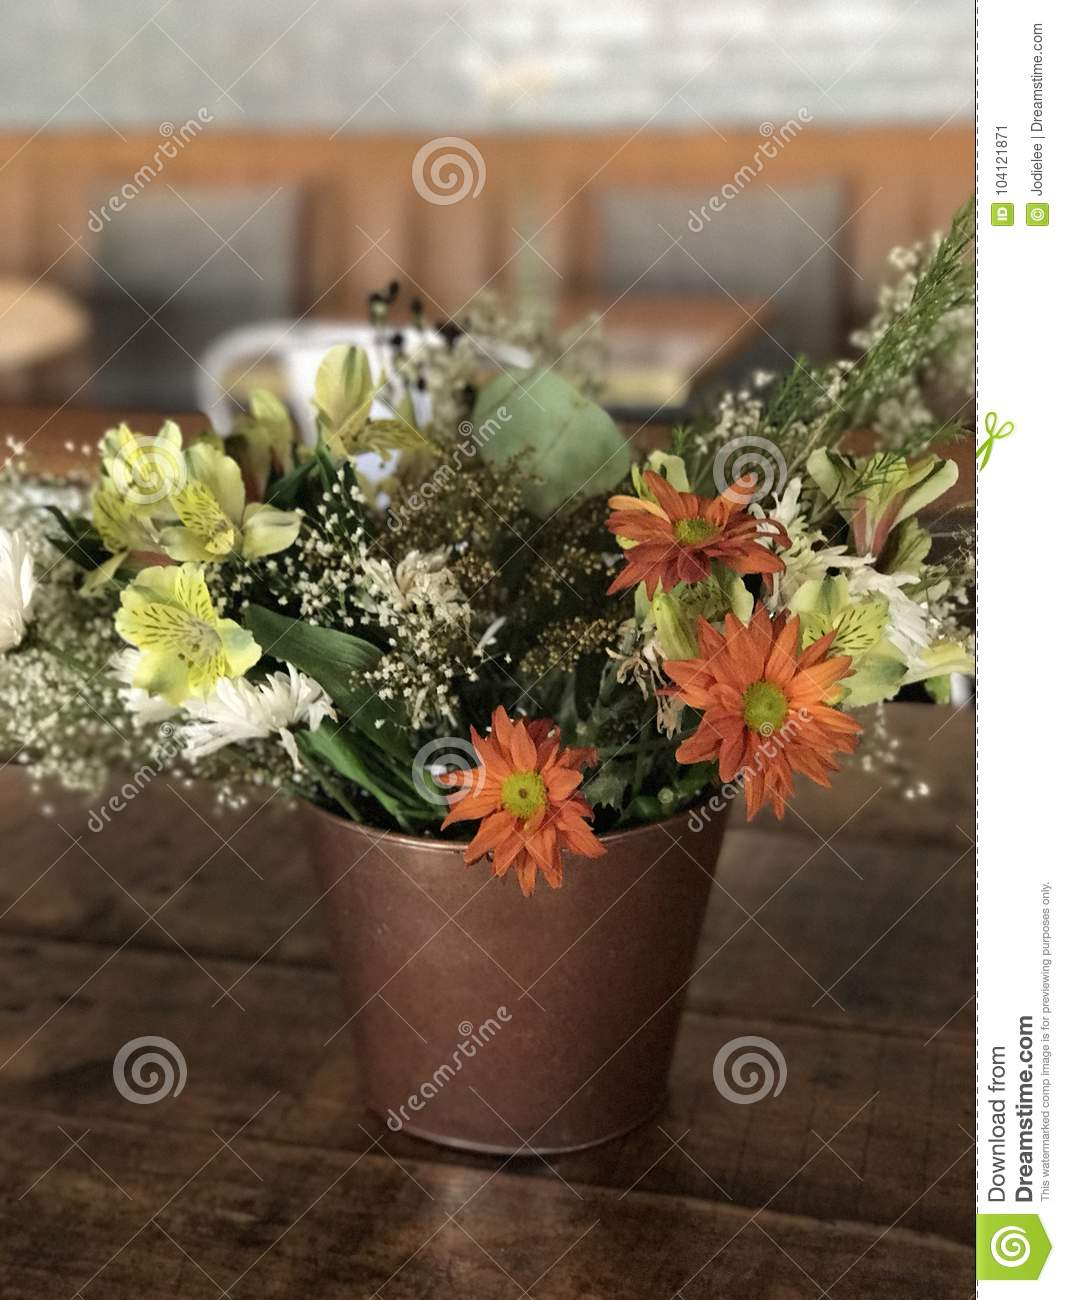 Vase With Pretty Flowers Stock Image Image Of Flowers 104121871